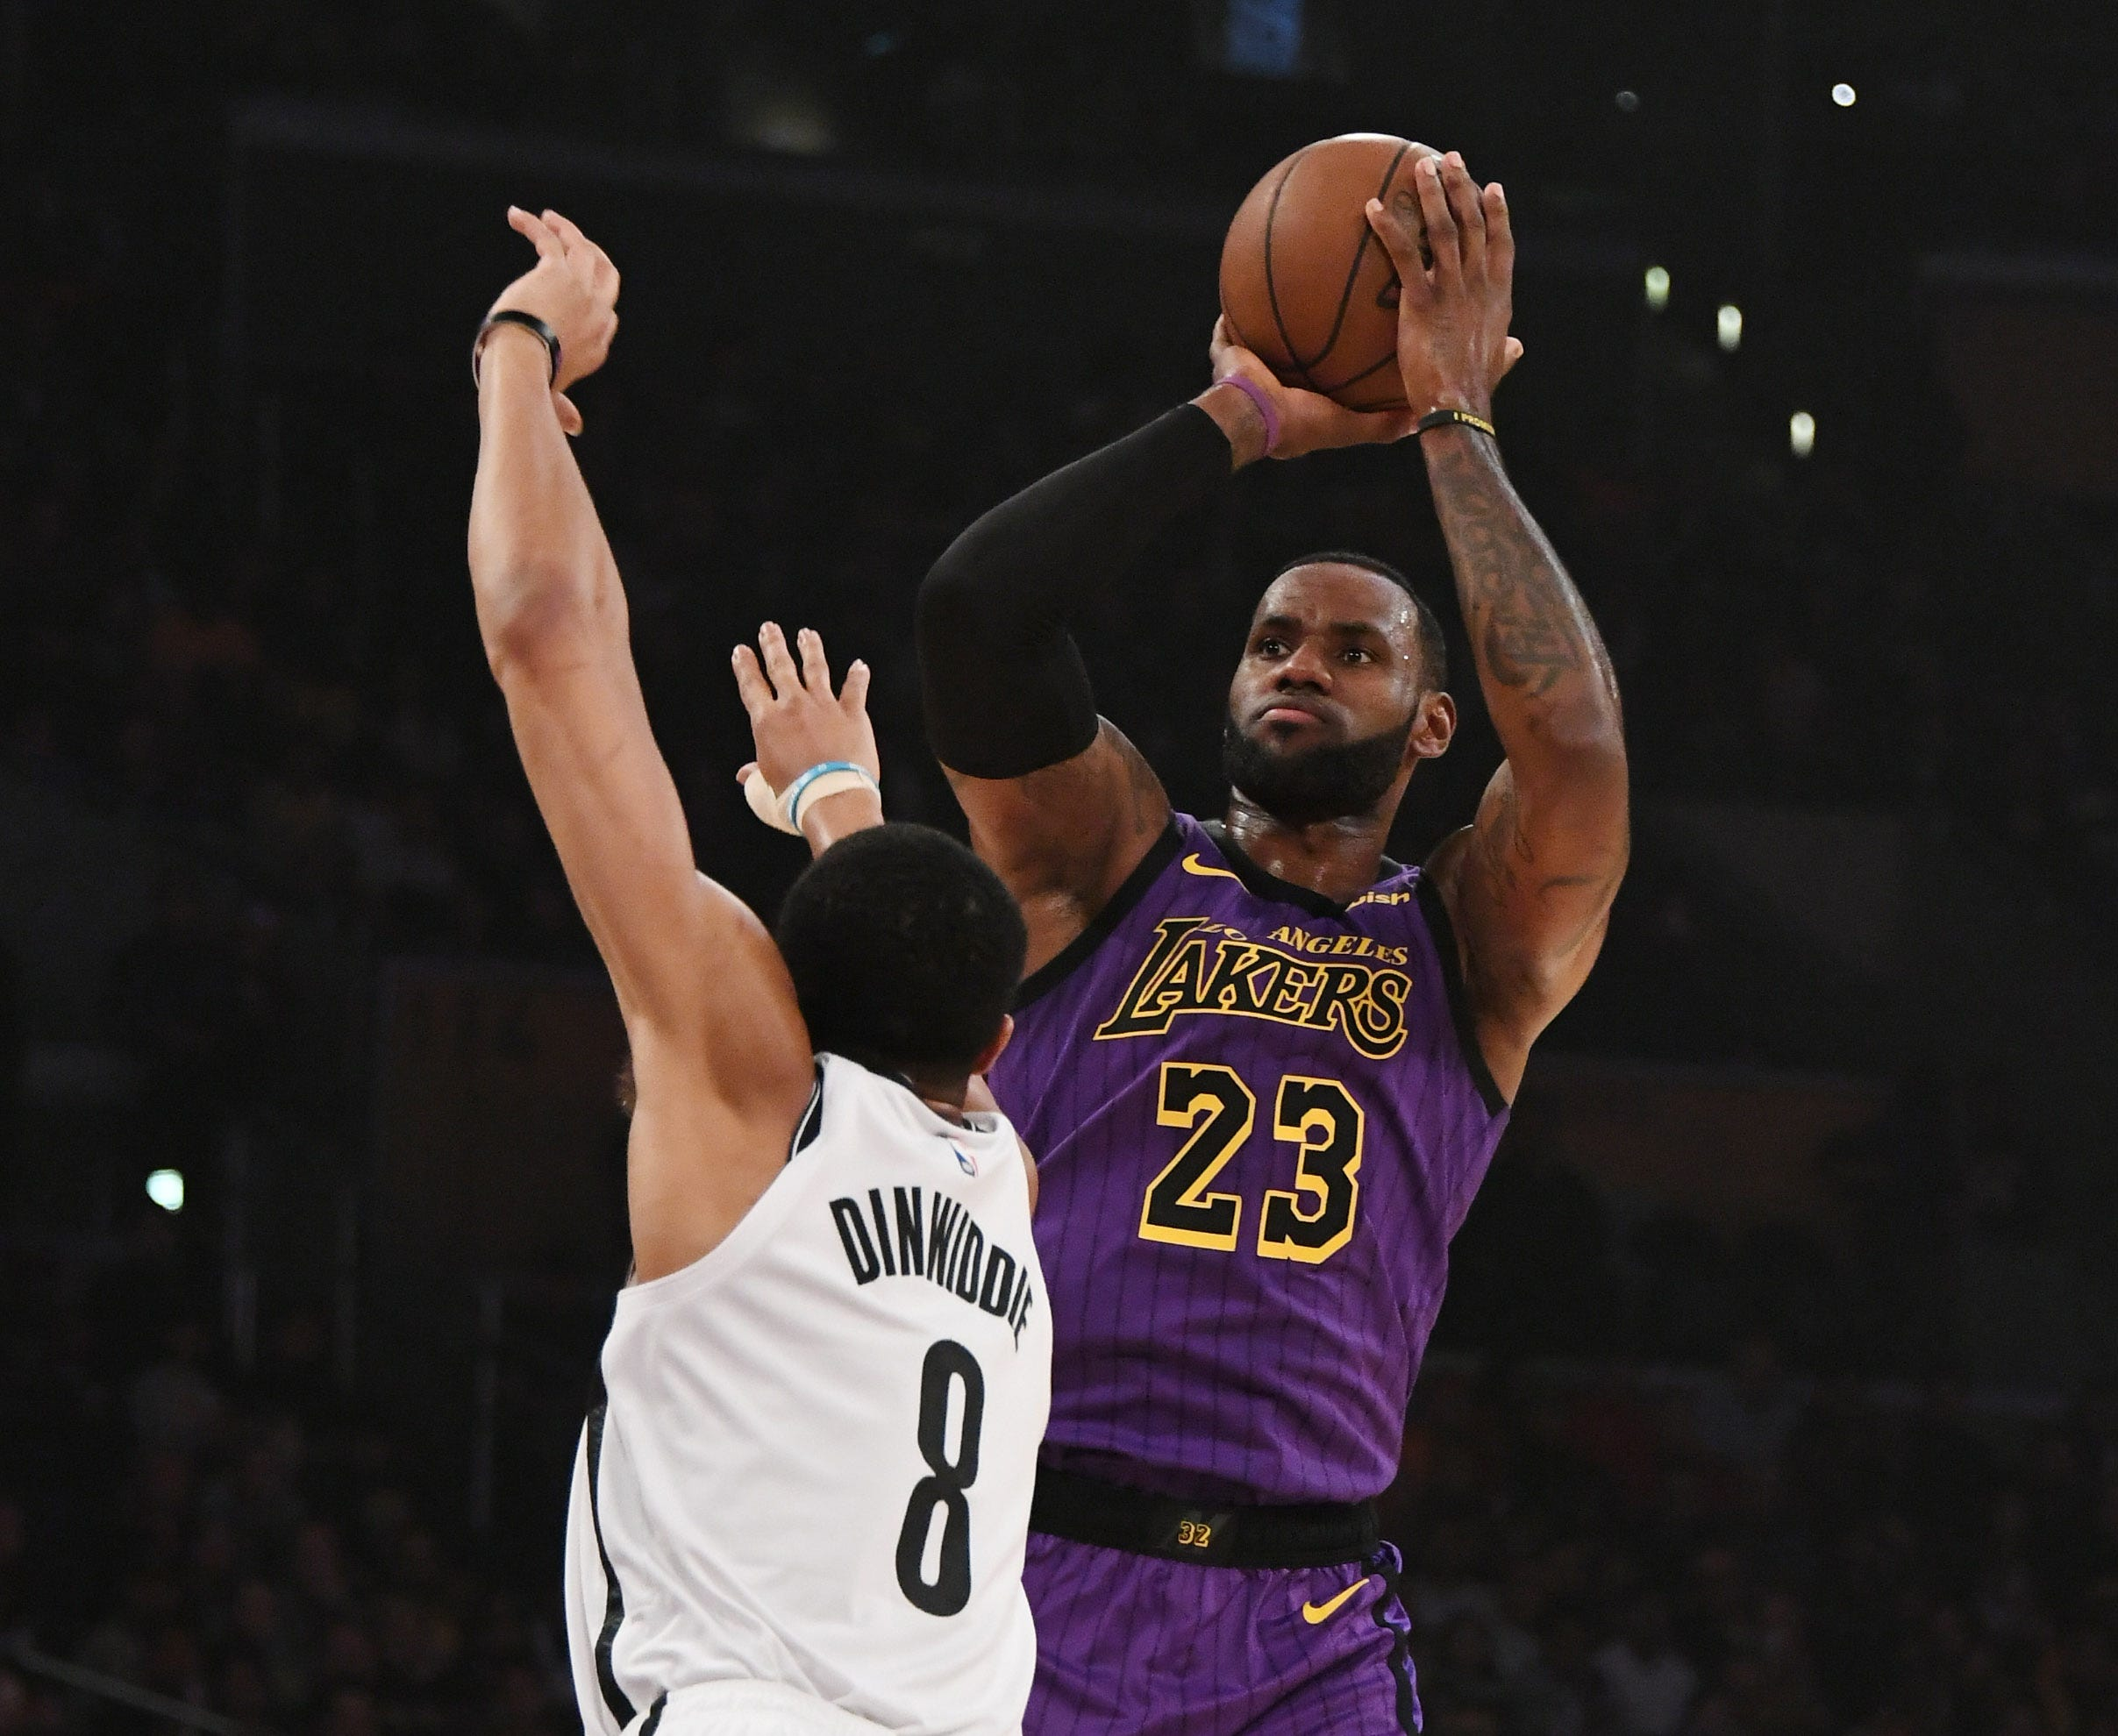 Lakers eliminated from playoff contention with loss to Nets